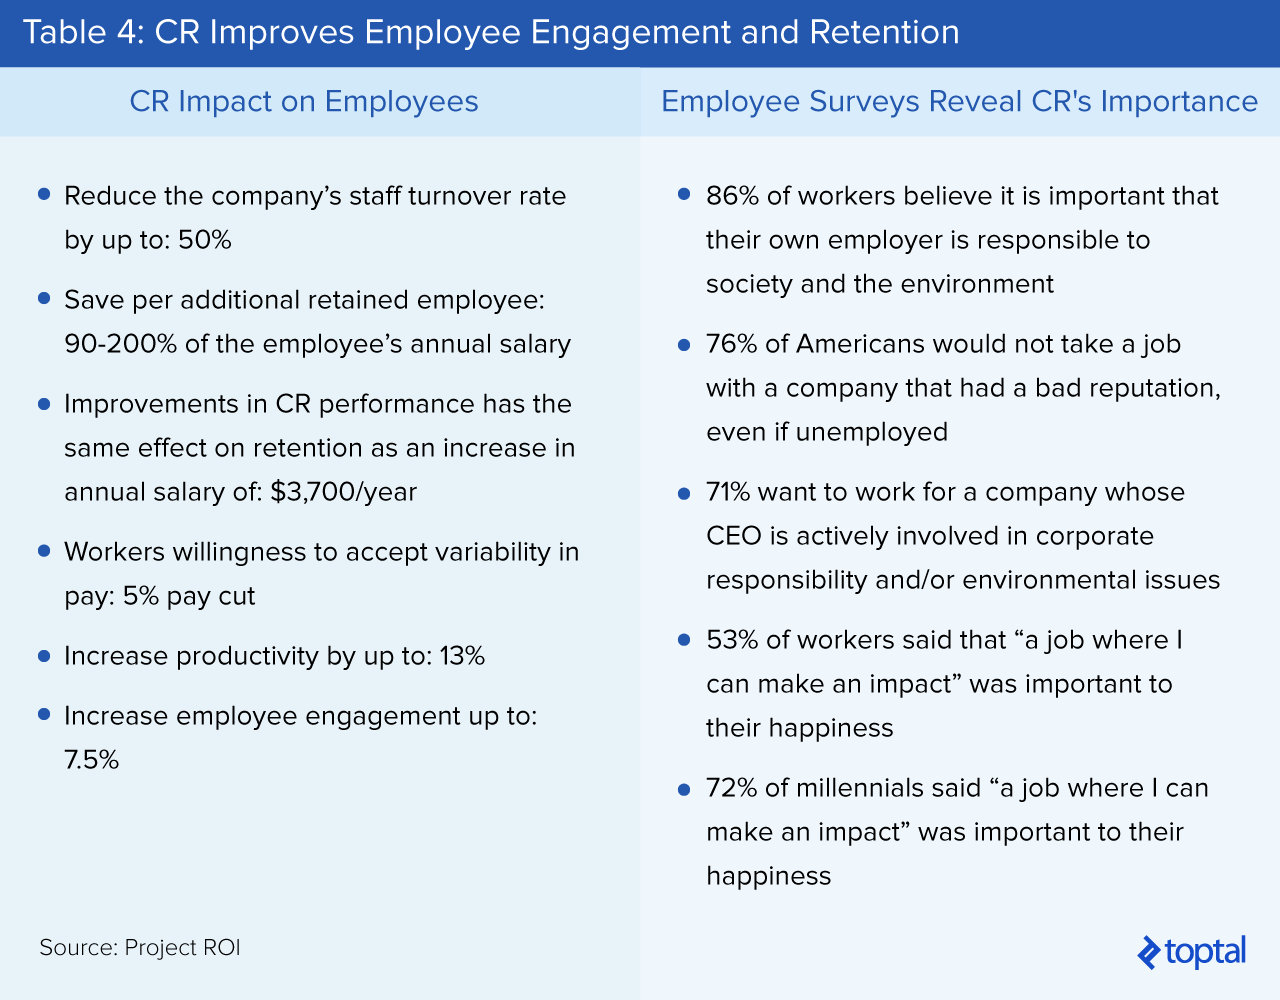 Table 4: CR Improves Employee Engagement and Retention